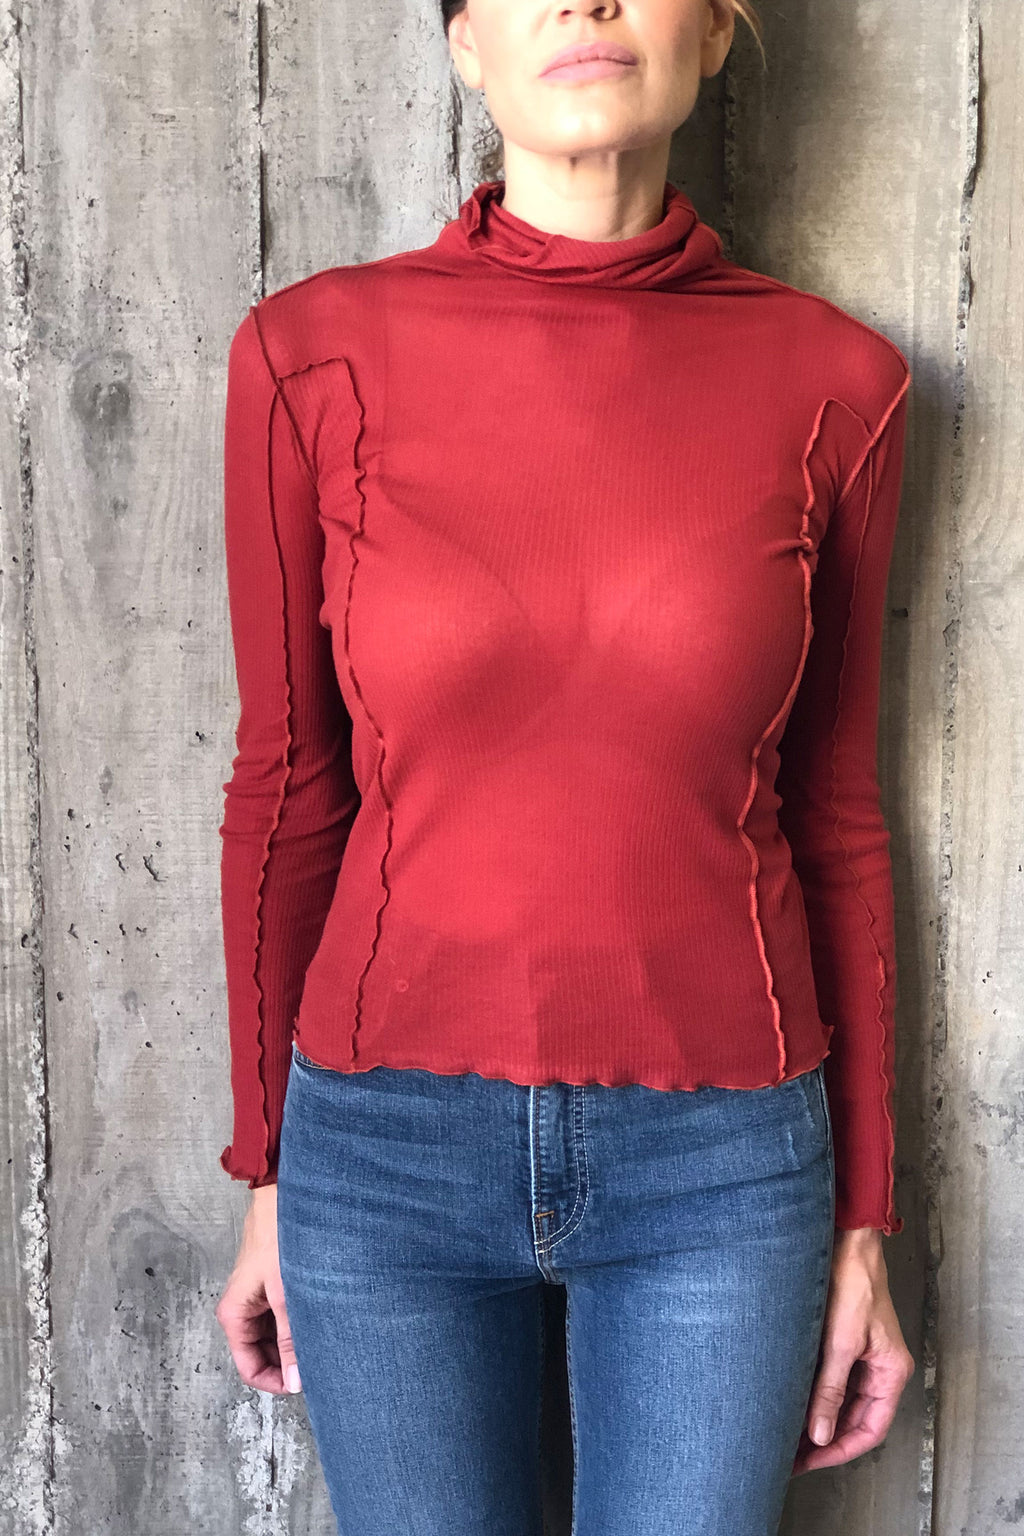 Base Range Omato Turtle Neck Cotton Rib In Cherry Red